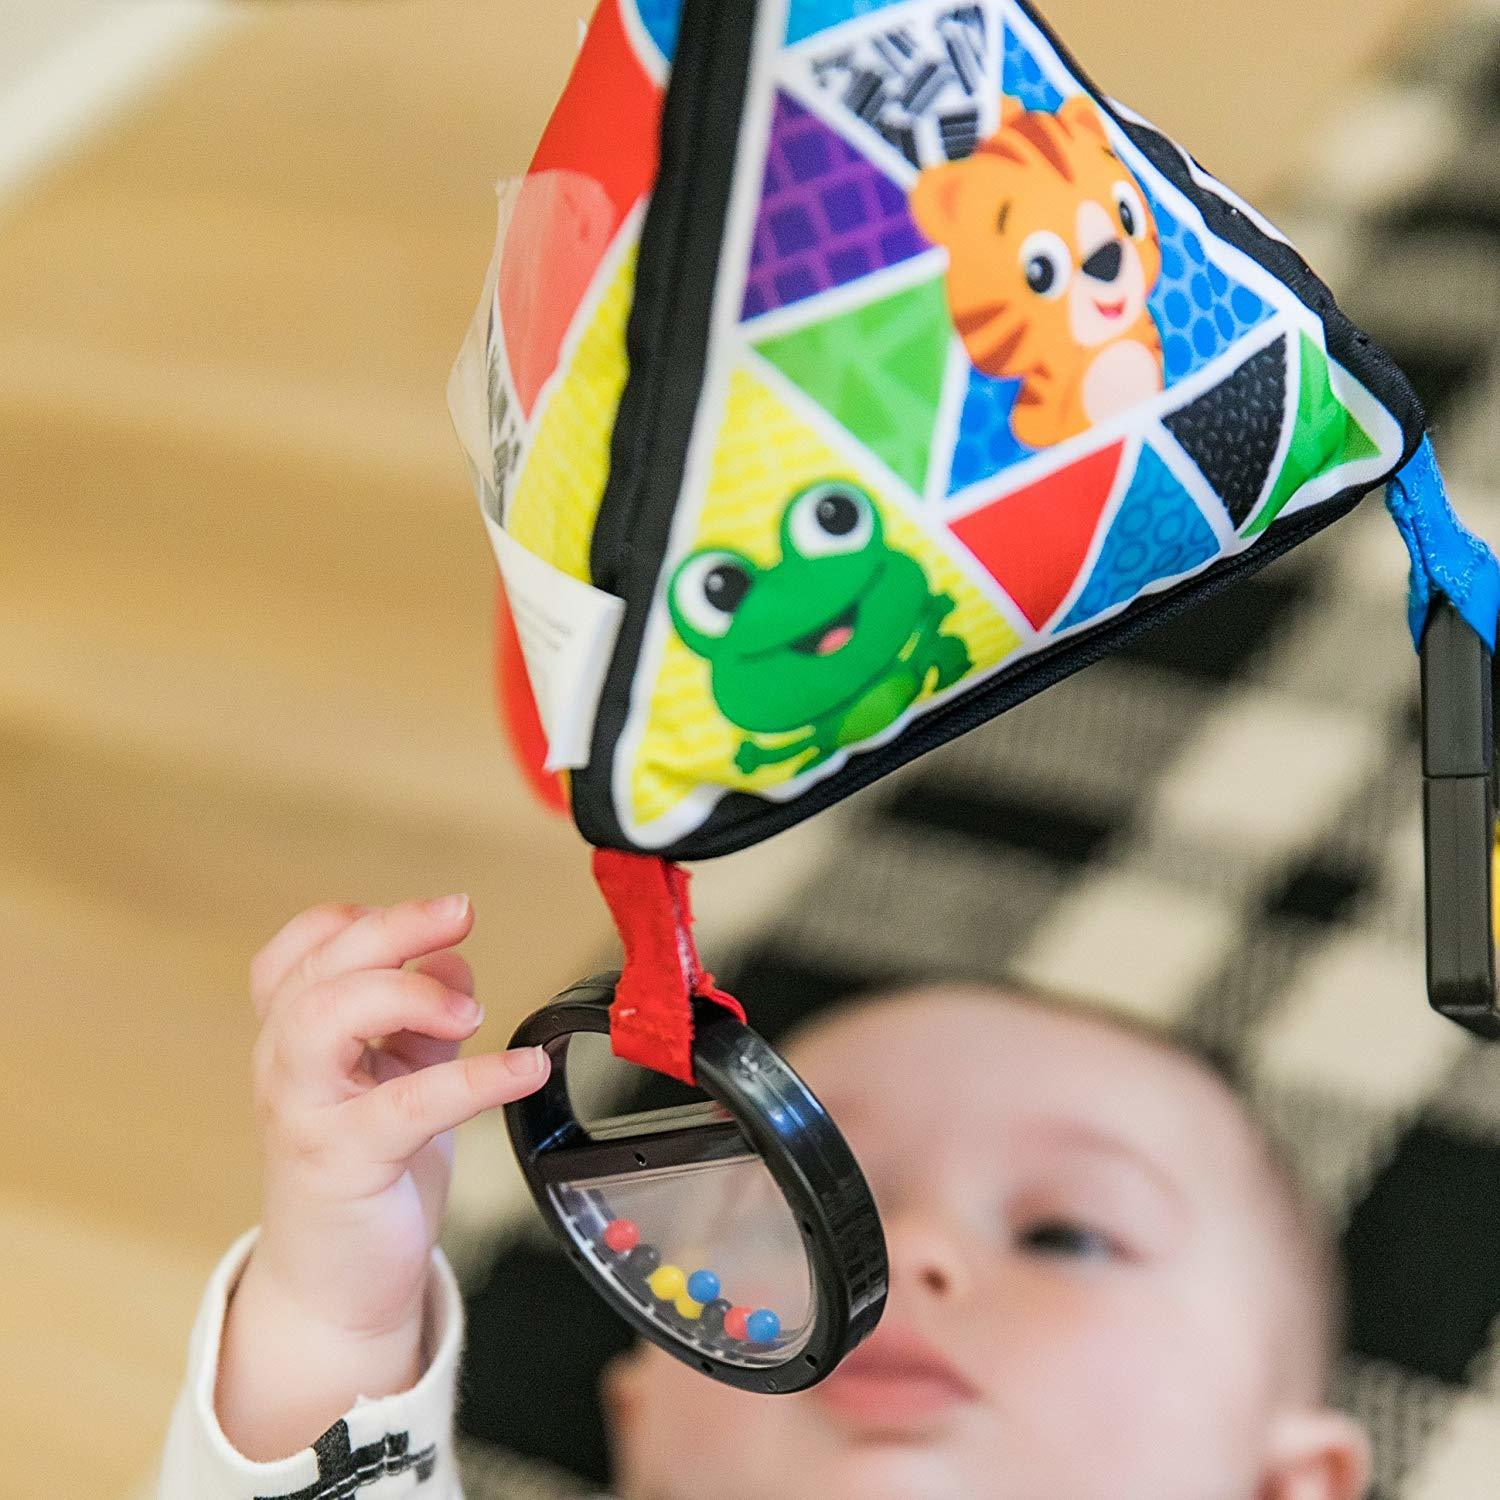 Baby Einstein - Playful Pyramid